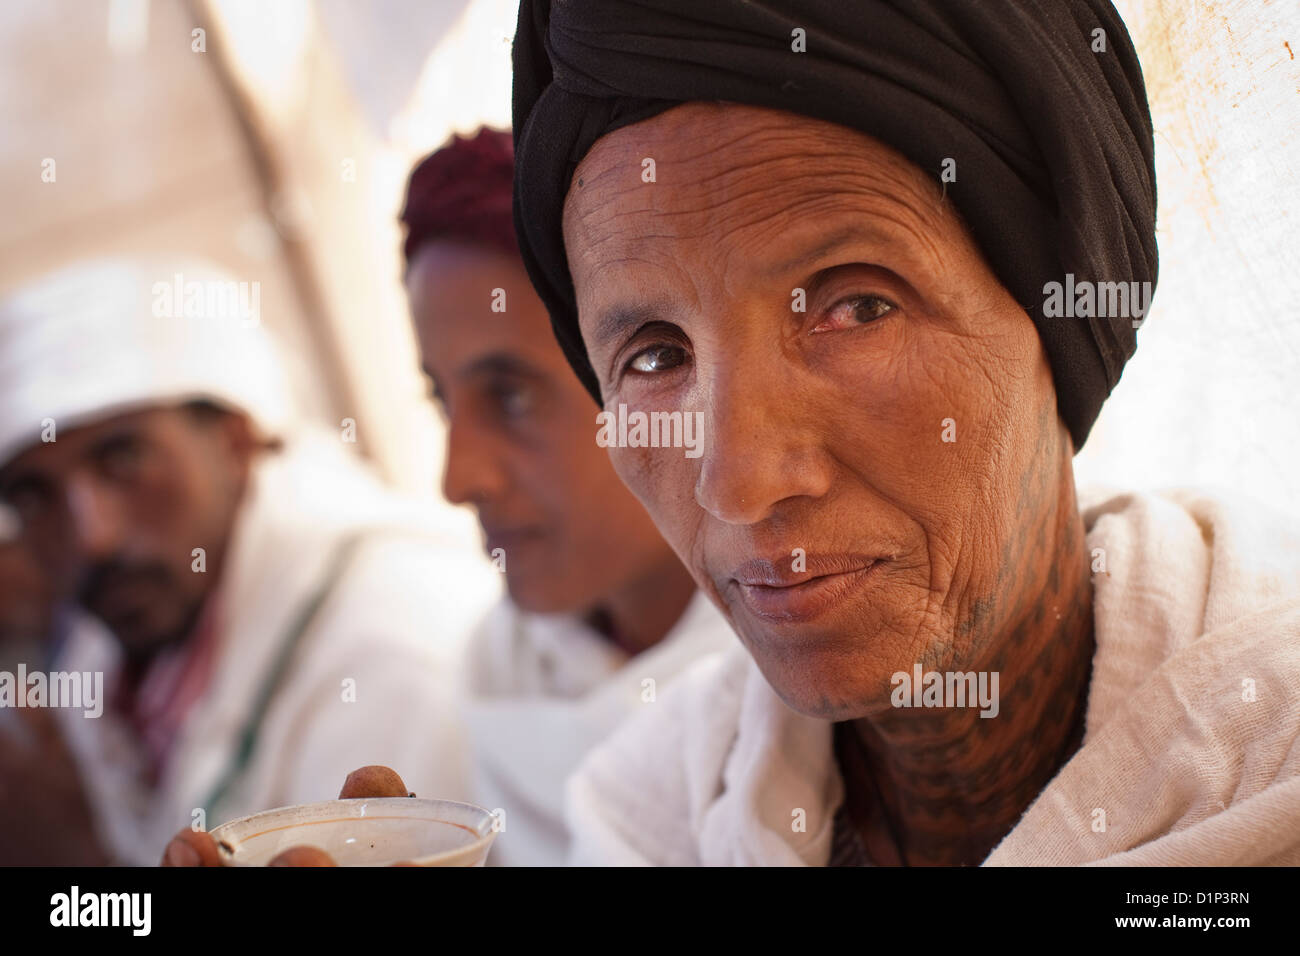 Woman in traditional othodox dress with facial tattoos in Debre Markos, Ethiopia. - Stock Image